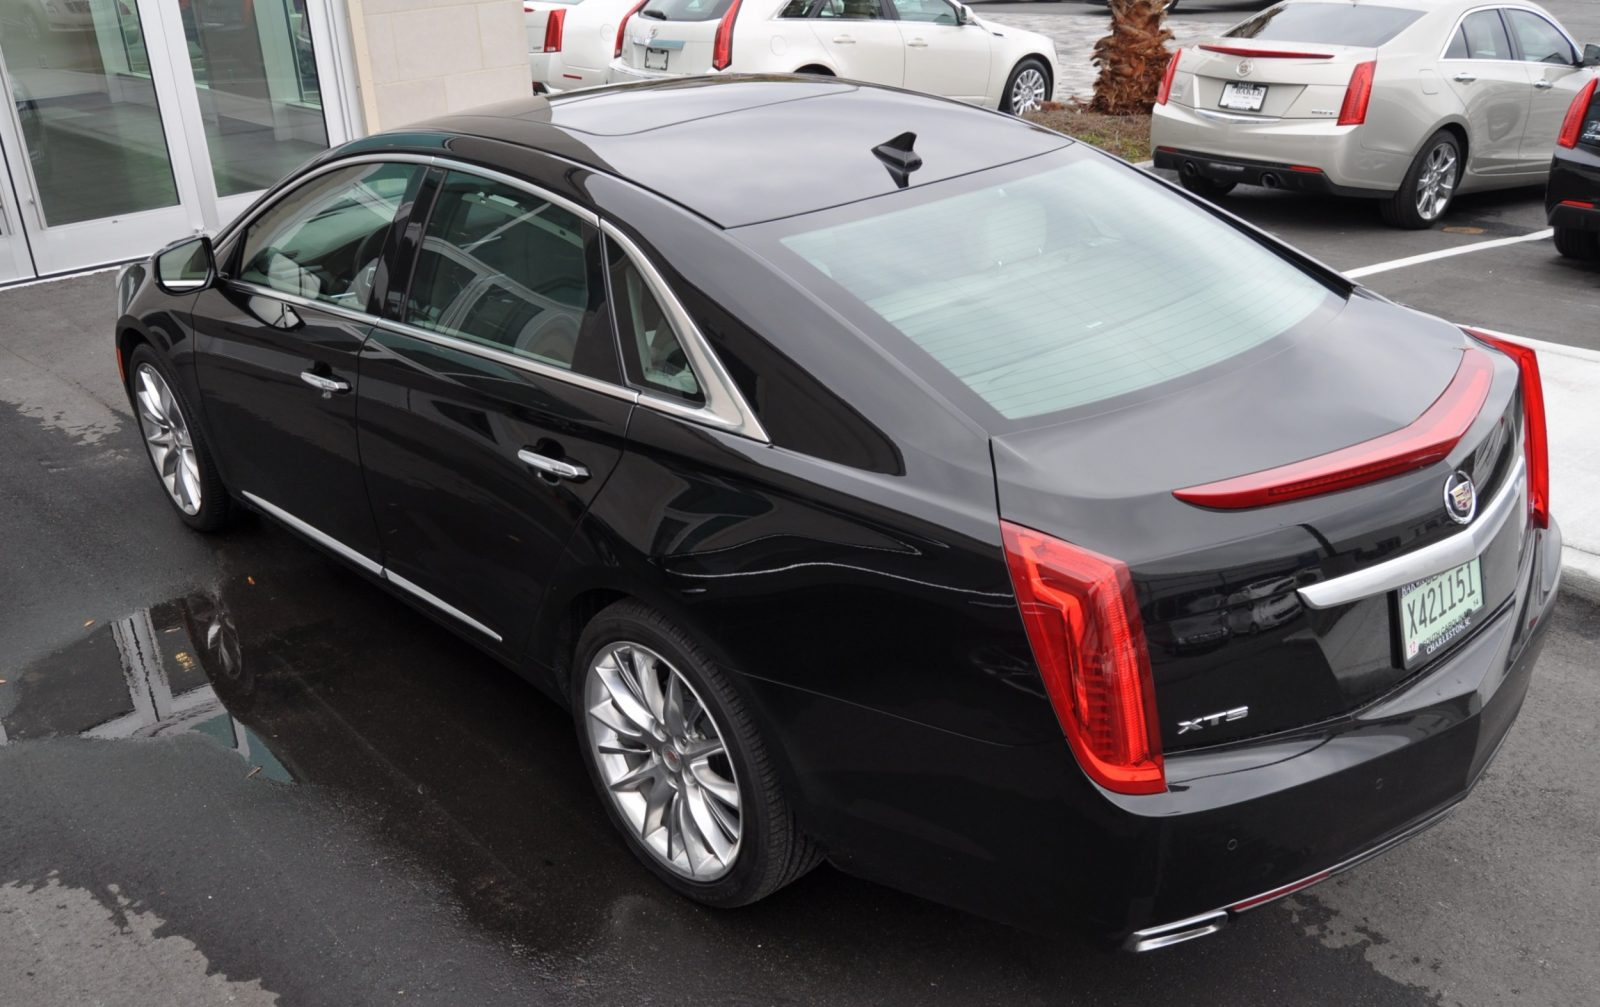 2014 Cadillac XTS4 Platinum Vsport -- First Drive Video and Photos 19